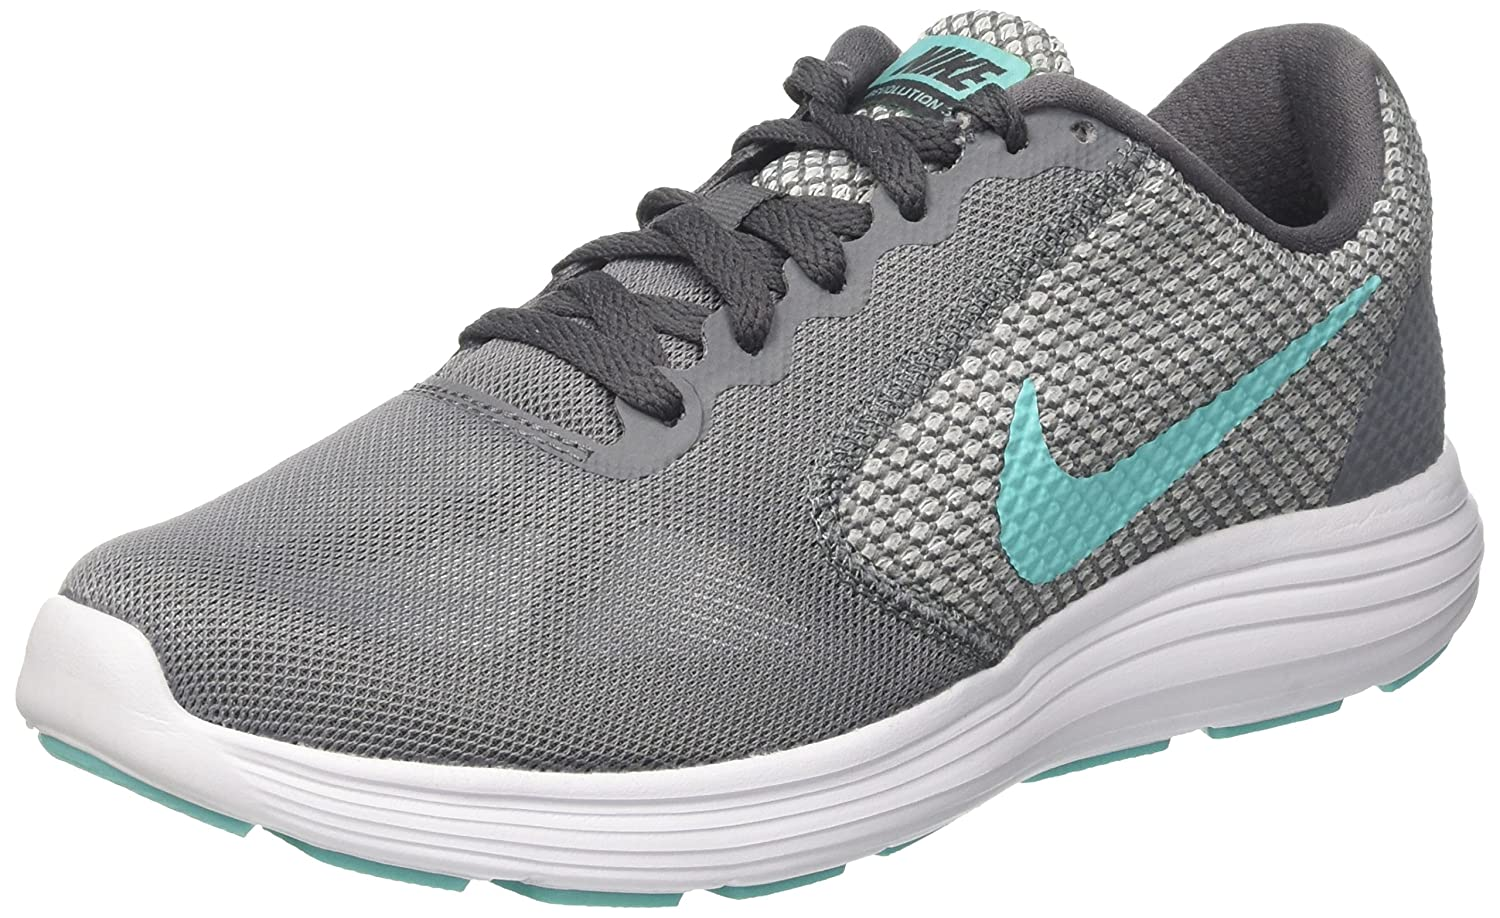 NIKE Women's US|Cool Revolution 3 Running Shoe B007NALJ5A 8.5 B(M) US|Cool Women's Grey/Aurora Green/Dark Grey/White 47d9ee